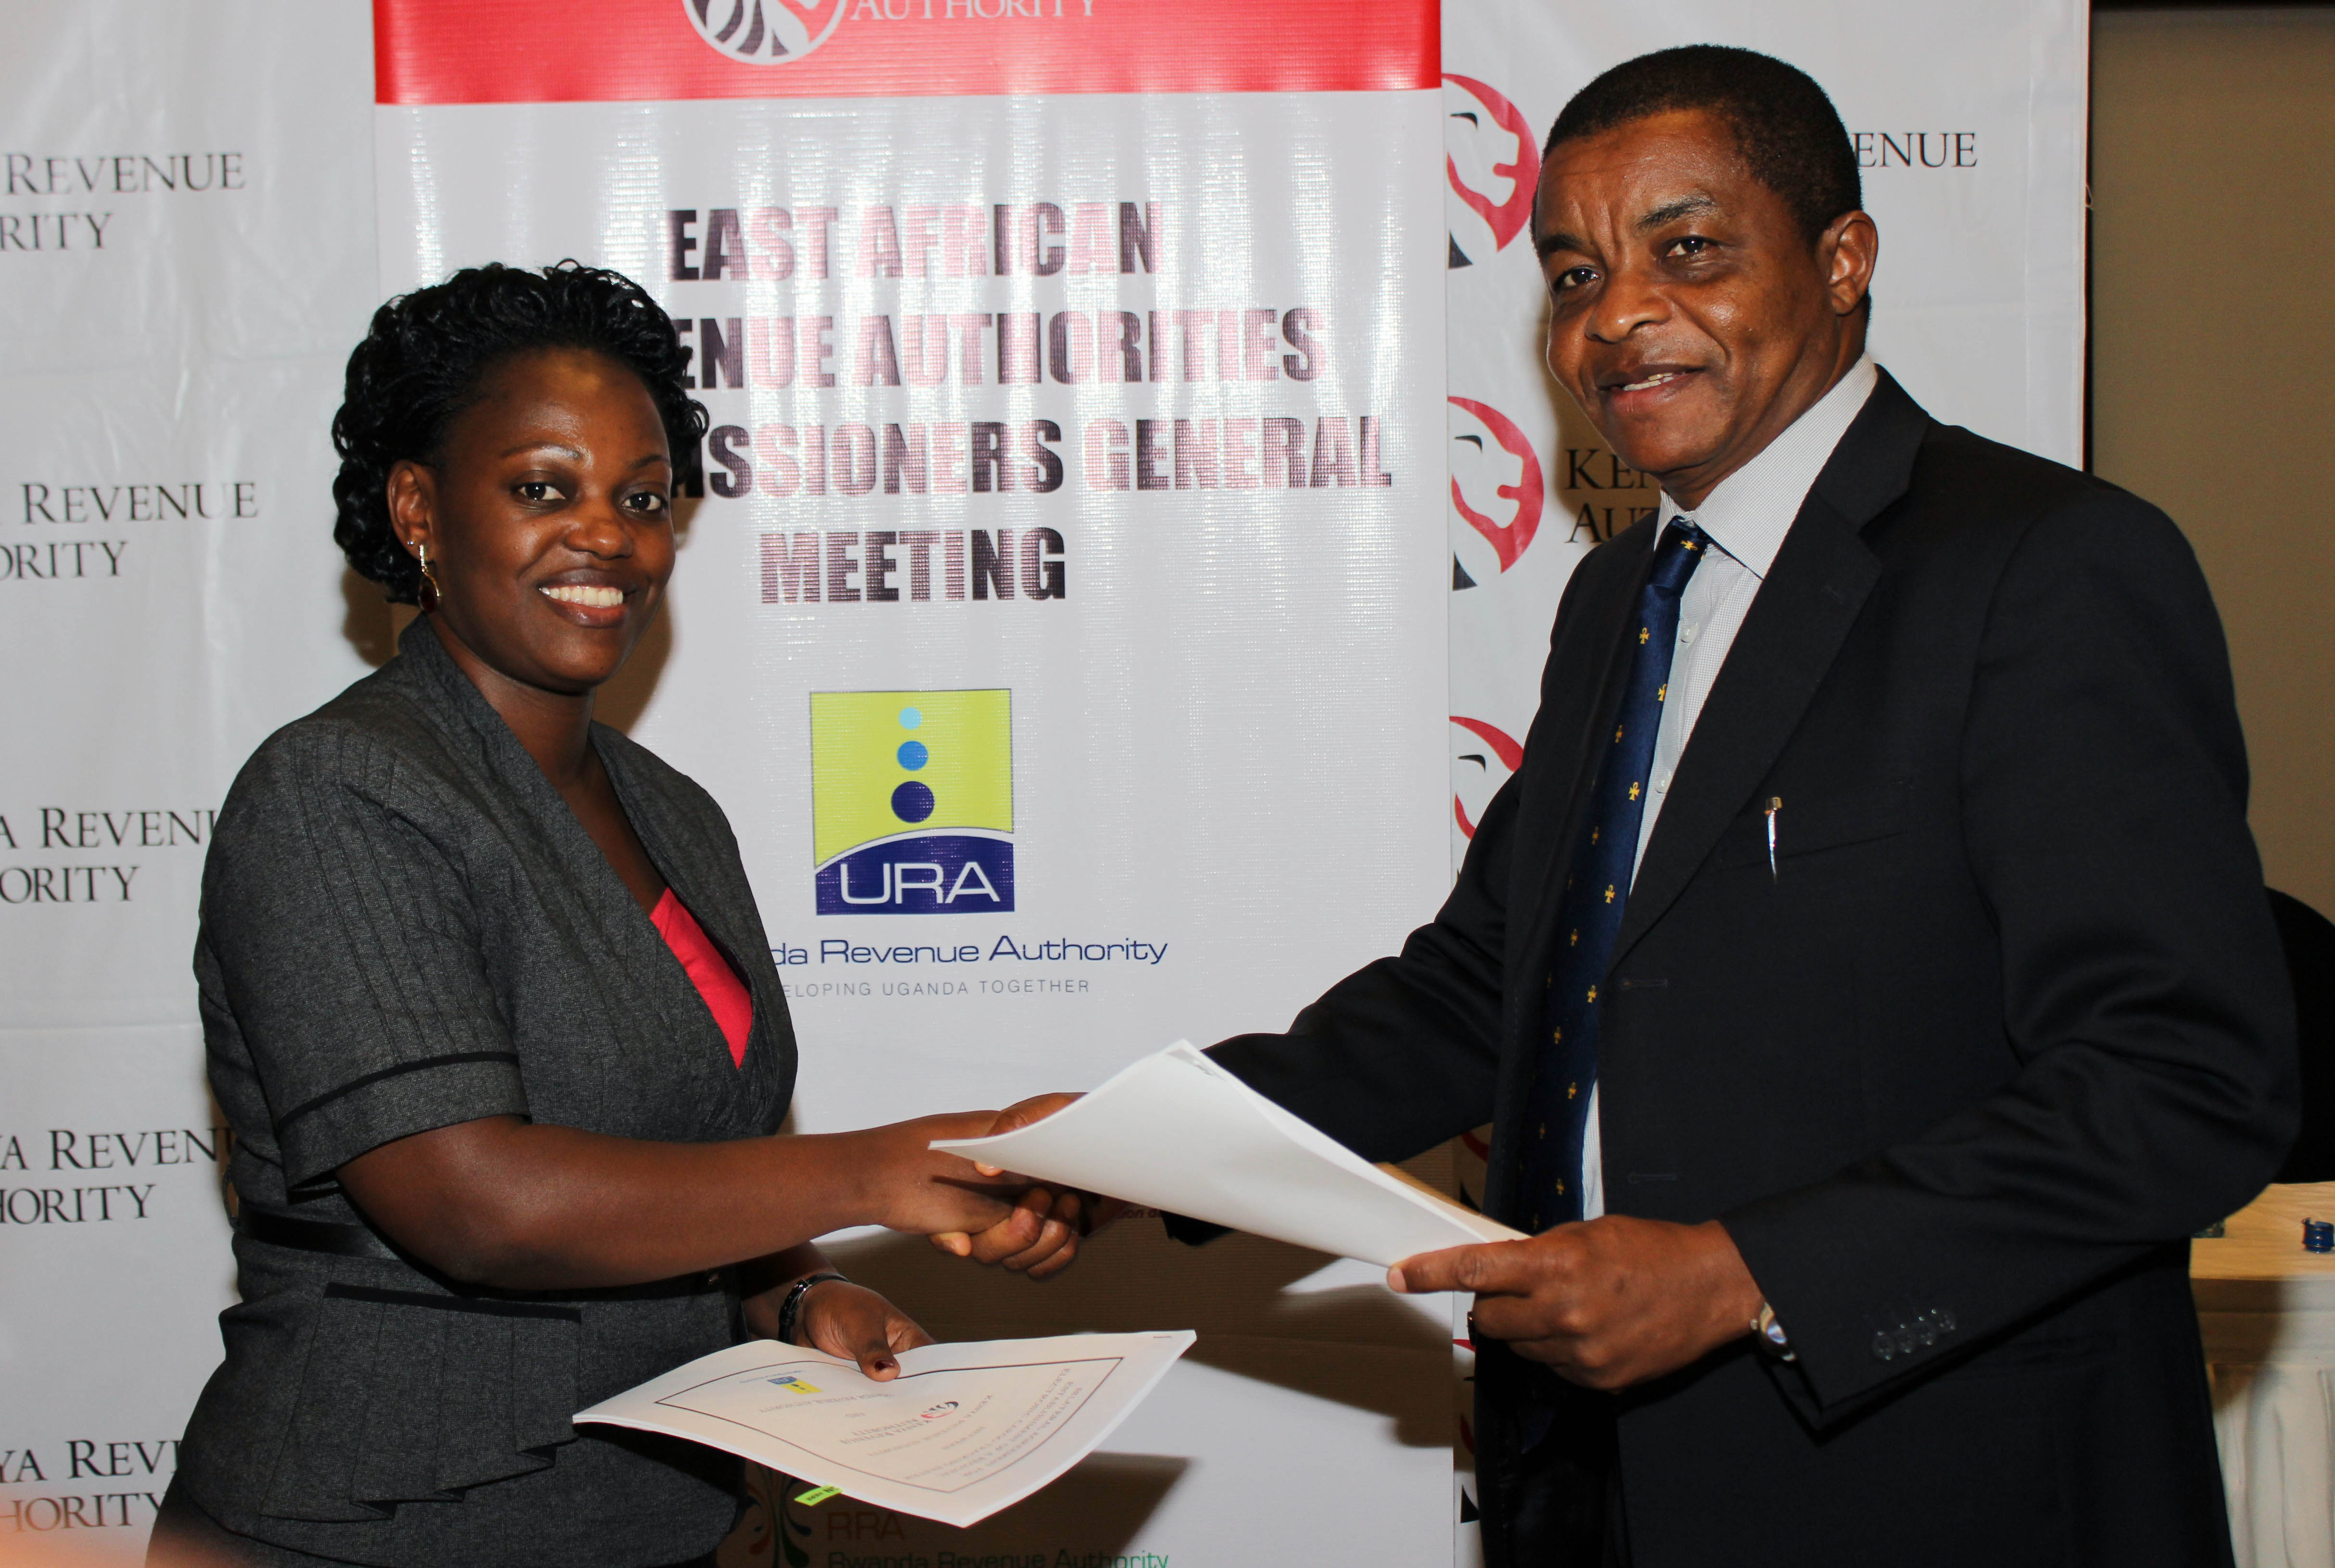 URA Legal Services Commissioner Patience Rubagumya exchanges documents with KRA boss Njiraini